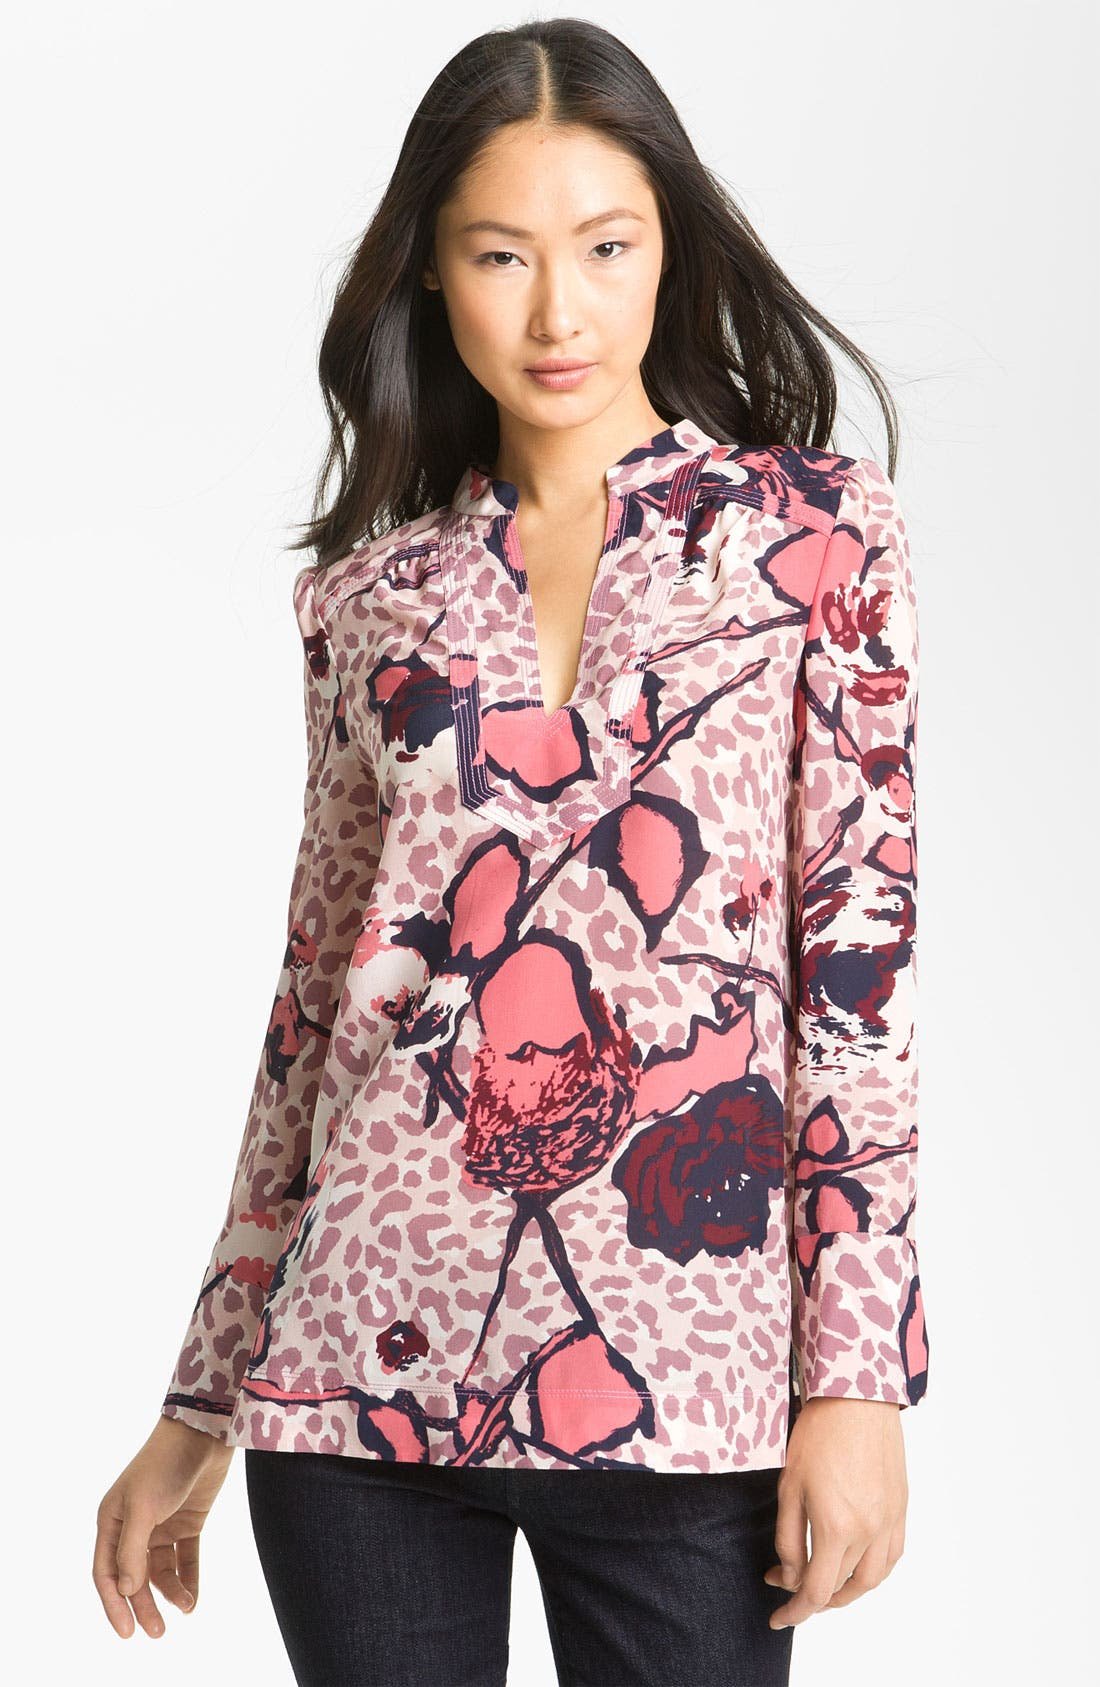 Alternate Image 1 Selected - Tory Burch 'Whitfiels' Print Silk Top